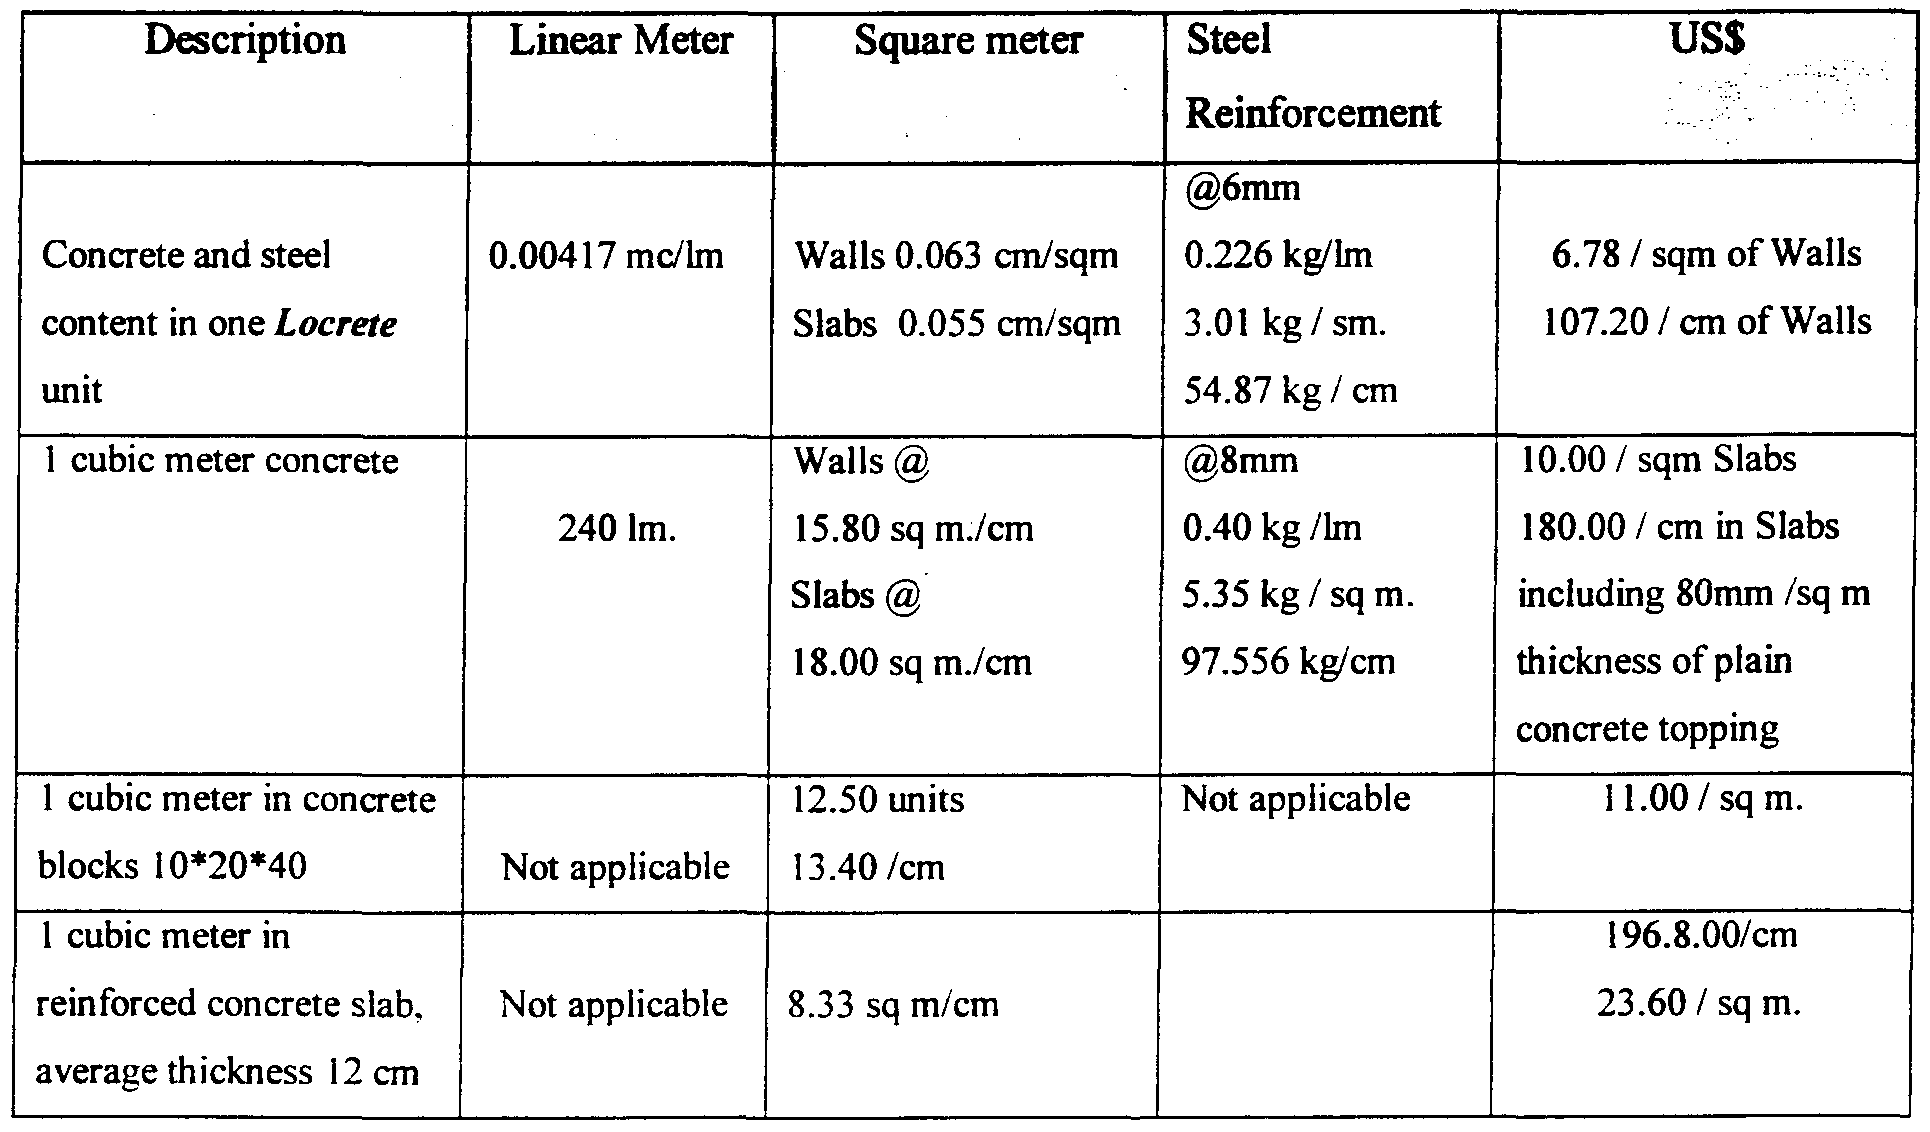 figure imgf000009_0001 - Design Of Reinforced Concrete Walls